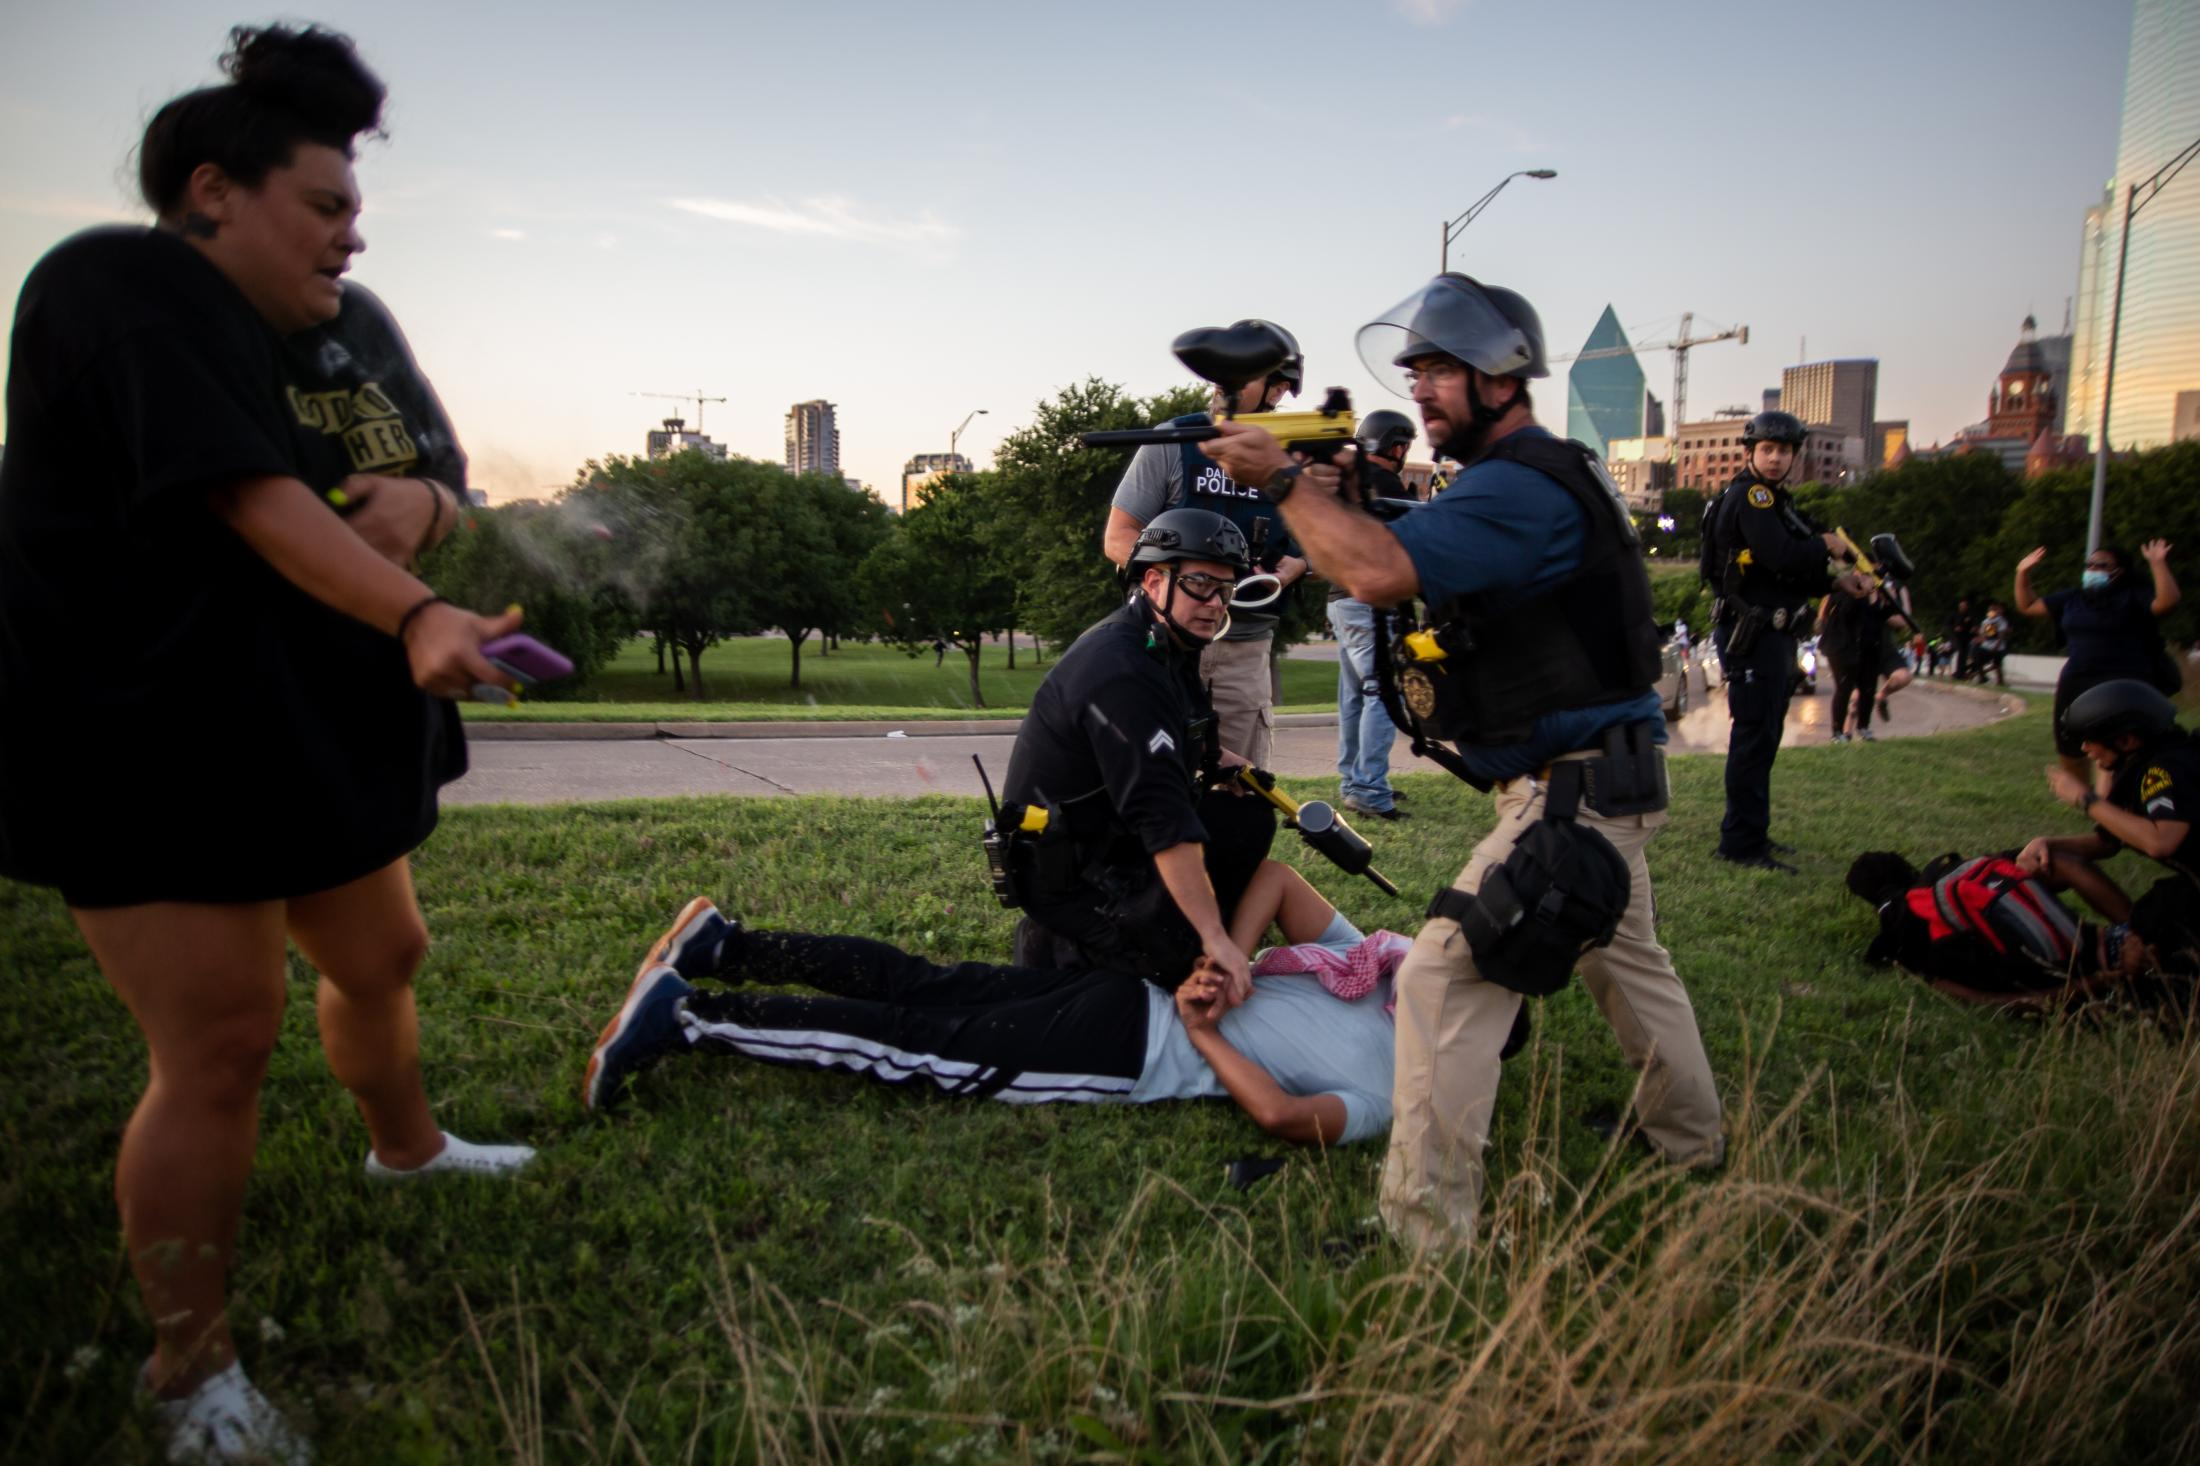 A Dallas Police Officer shoots pepper balls at a peaceful protester in close range, the woman was arrested and booked in Dallas County Jail.